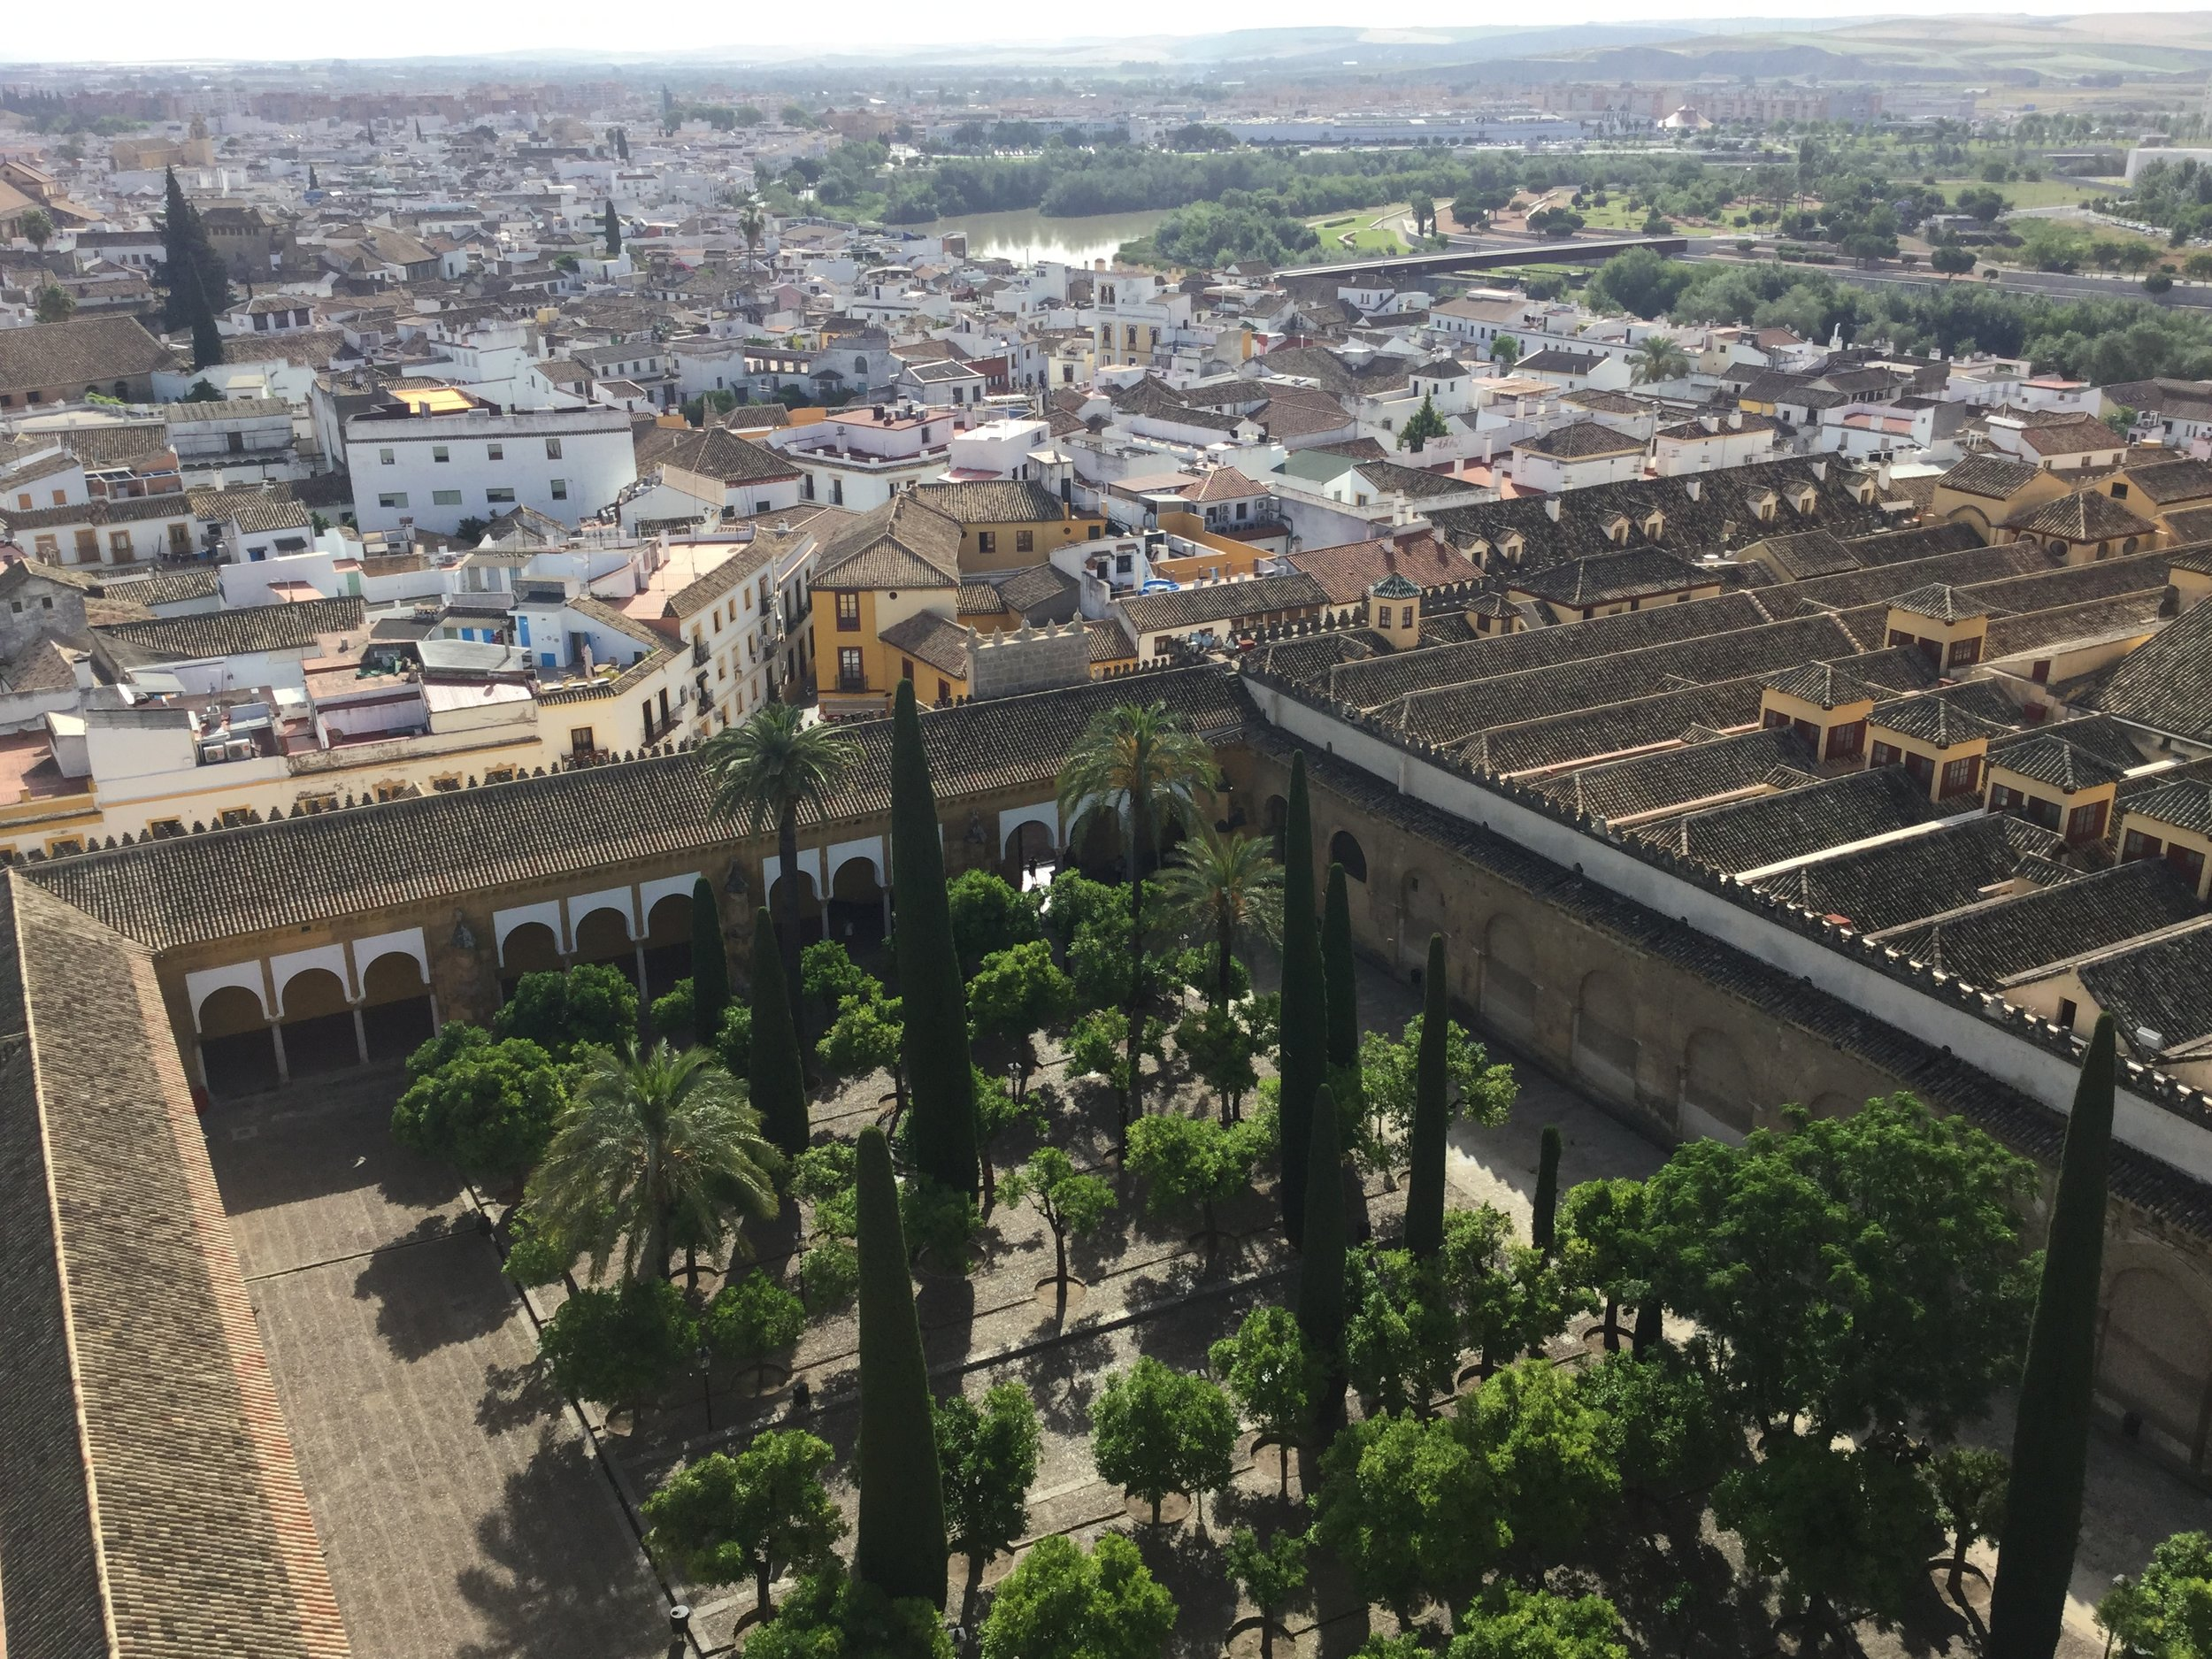 Here is the fabulous inner courtyard - Patio de los Naranjas - from above. Guadalquivir river in the background.